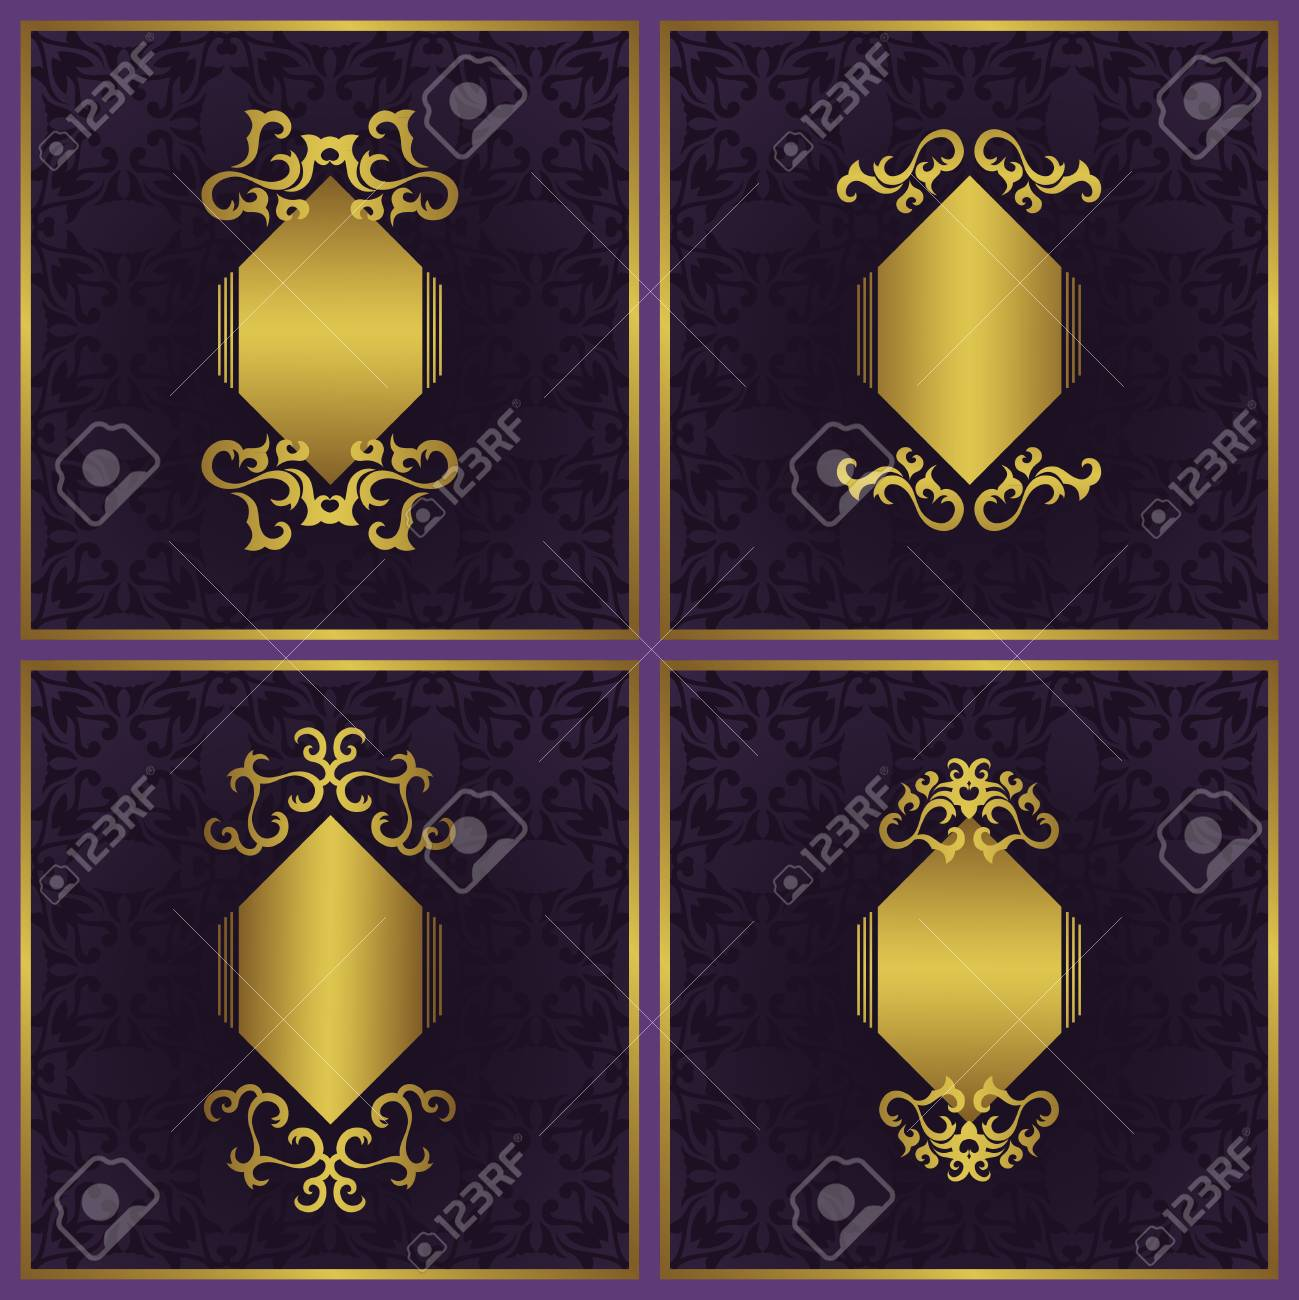 8dfc4584c00 Set of vector vintage cards with a beautiful gold frames on violet backgrounds  stock vector jpg